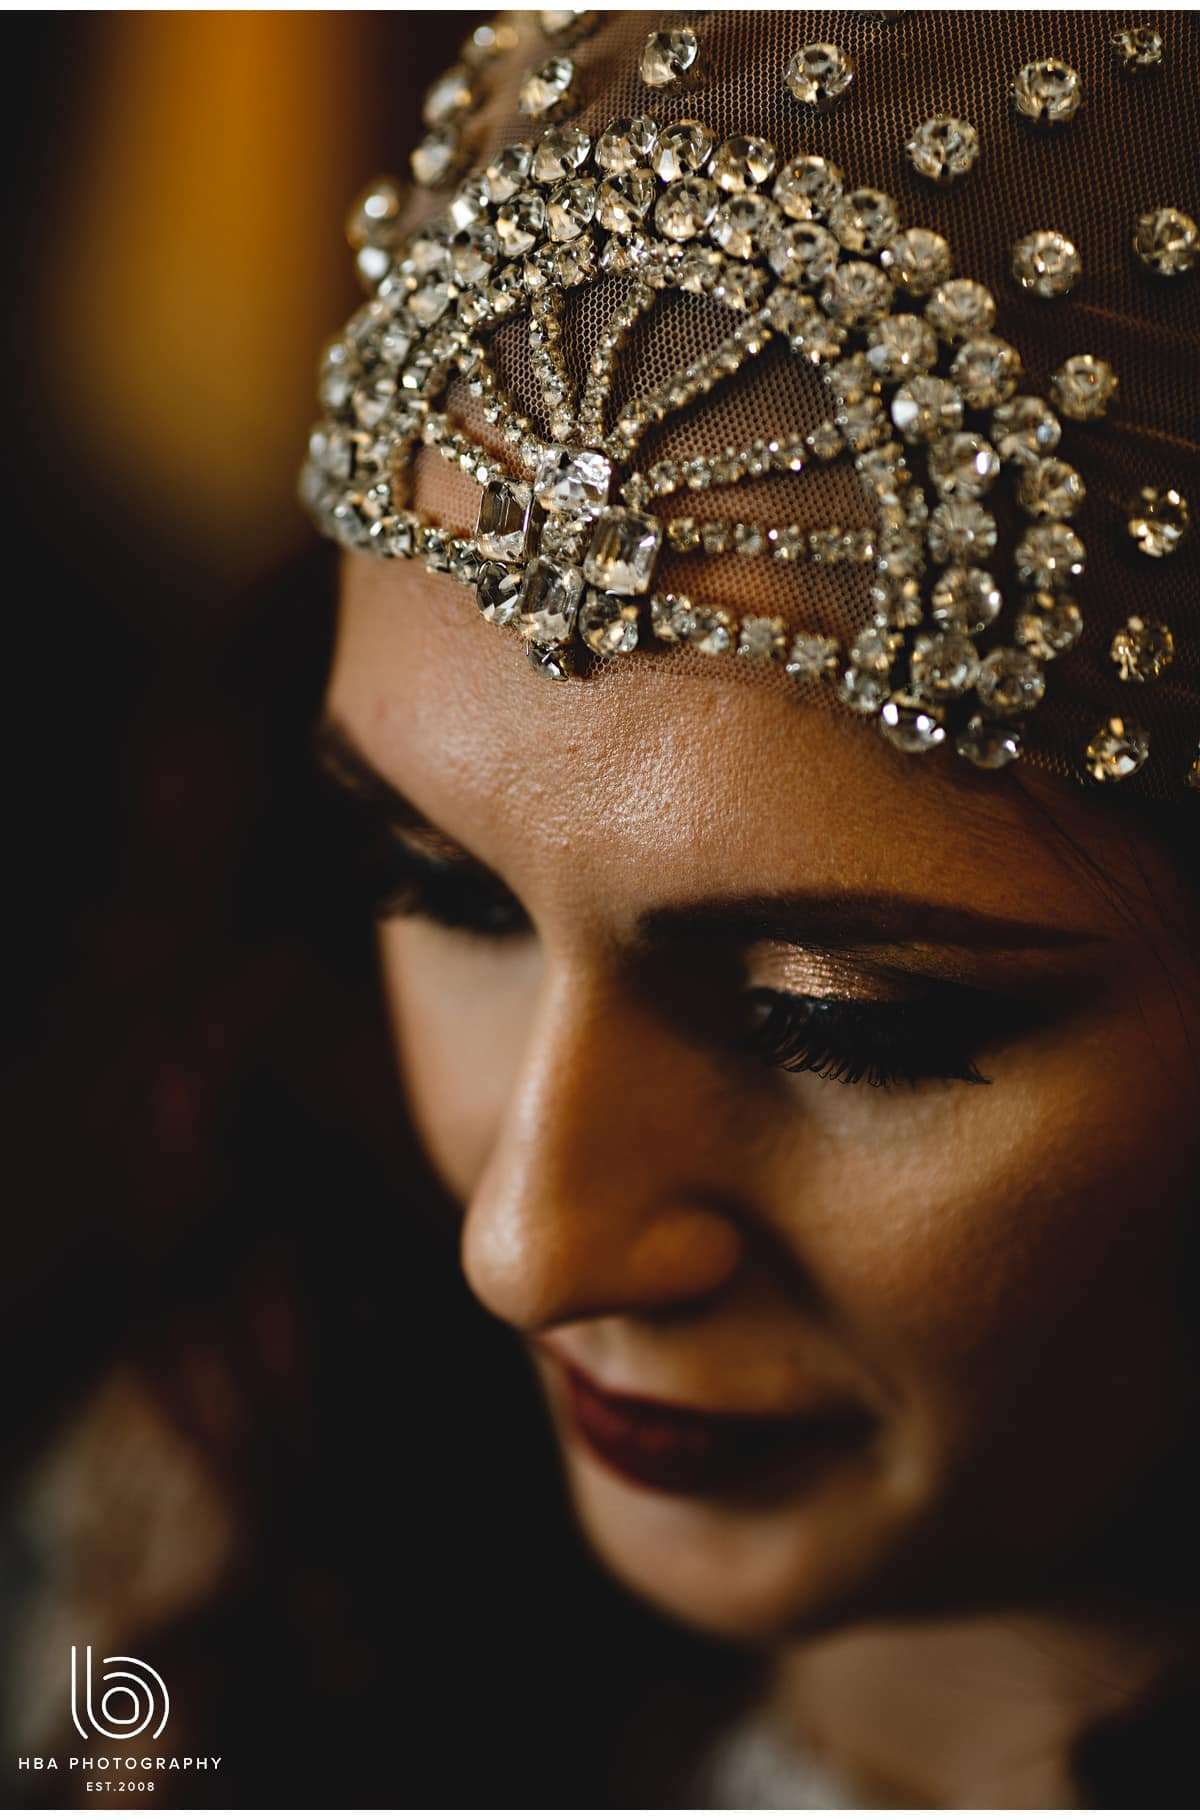 a close up of the bride's turban